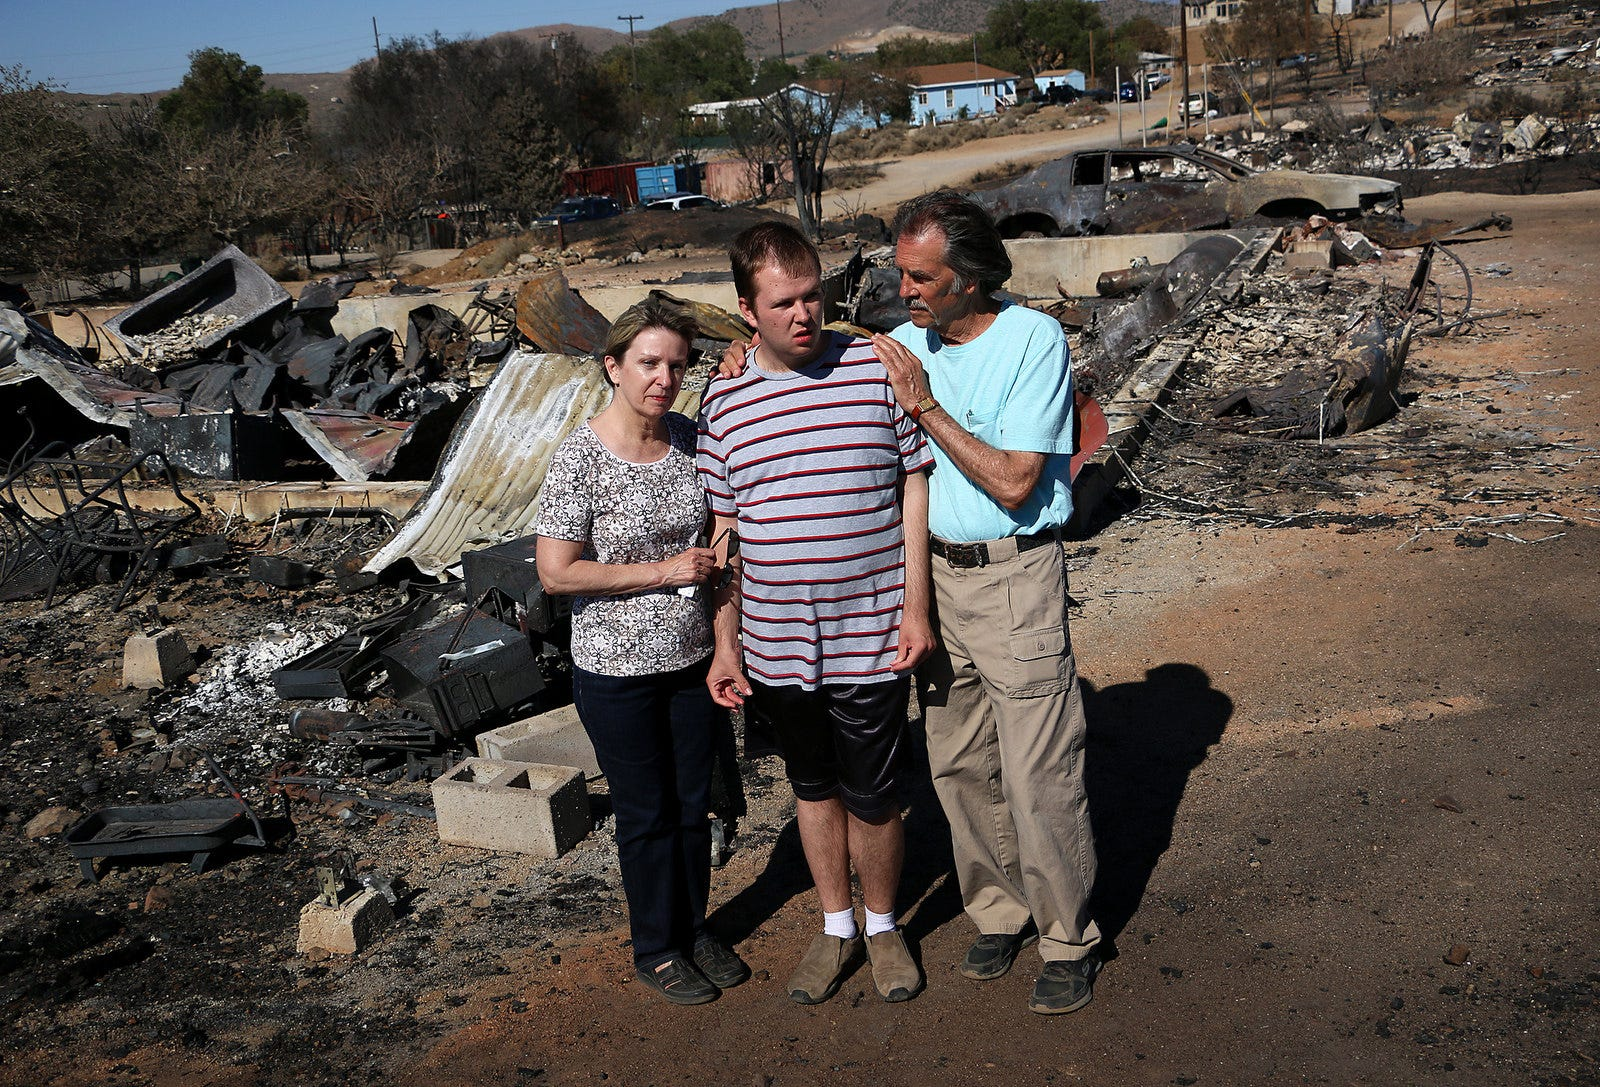 John Ranger, right, stands with his wife Nancy and son Brogan at the site of their home that burned during the Poeville Fire near Reno on July 3, 2020.